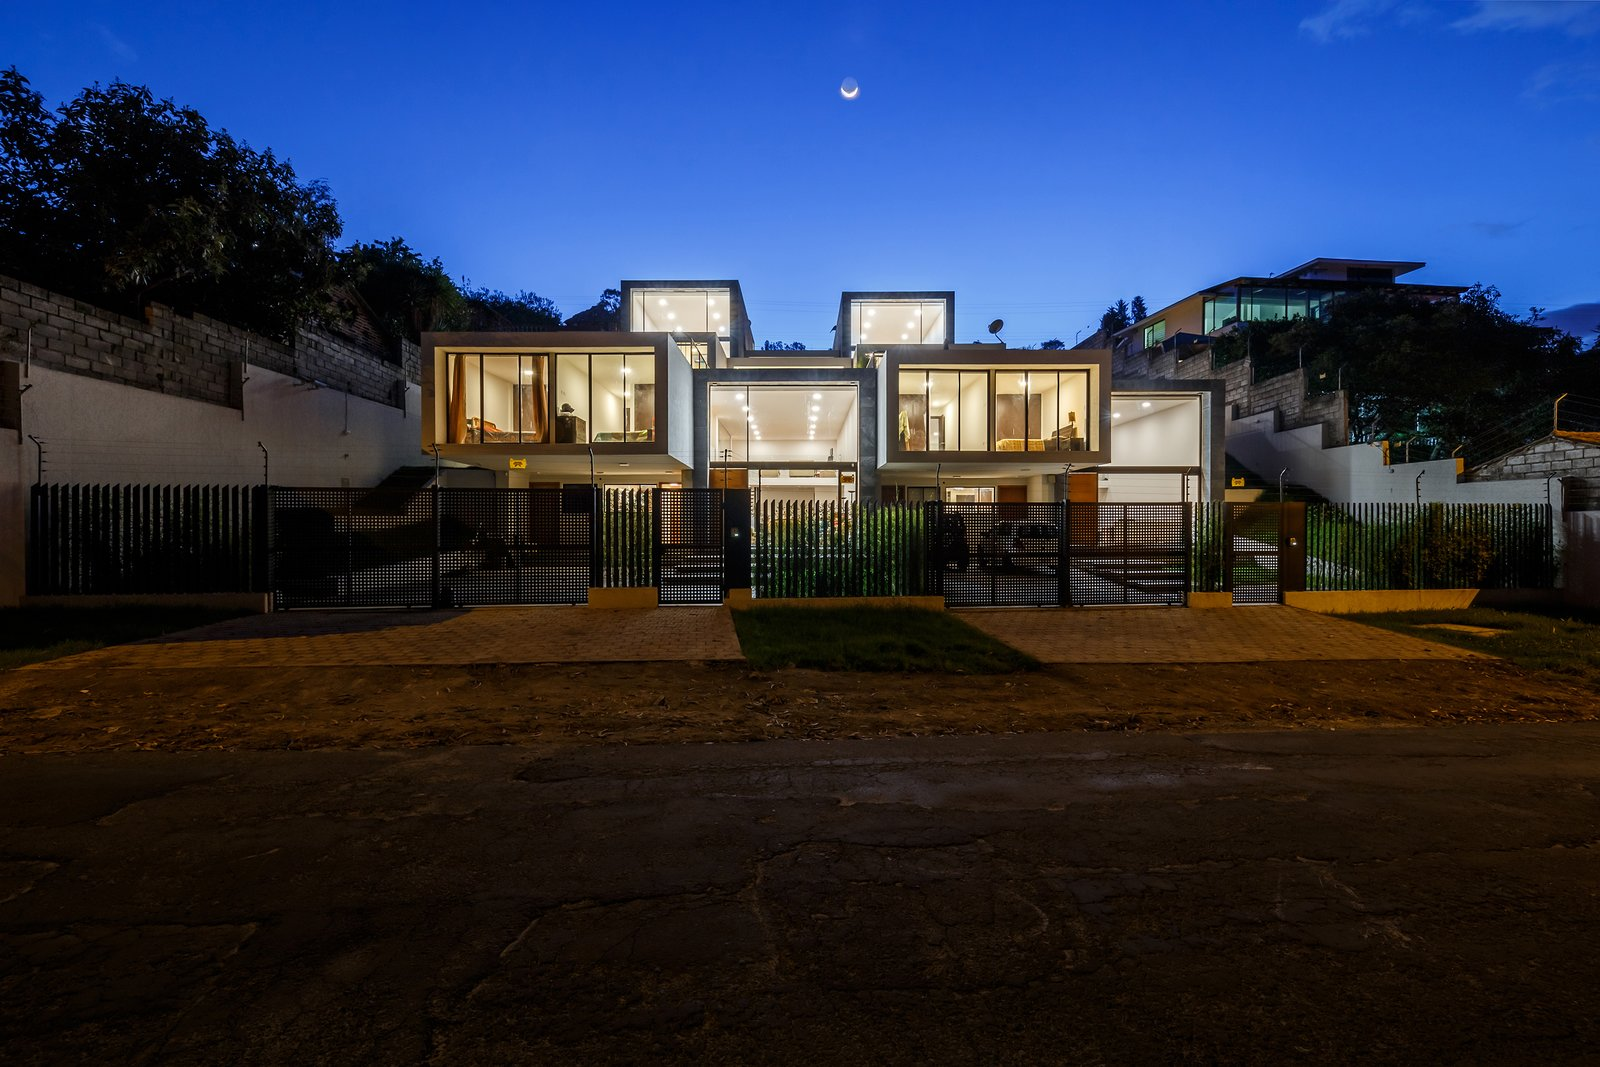 Tagged: Outdoor, Front Yard, and Concrete Patio, Porch, Deck.  FF Houses by TEC Taller EC